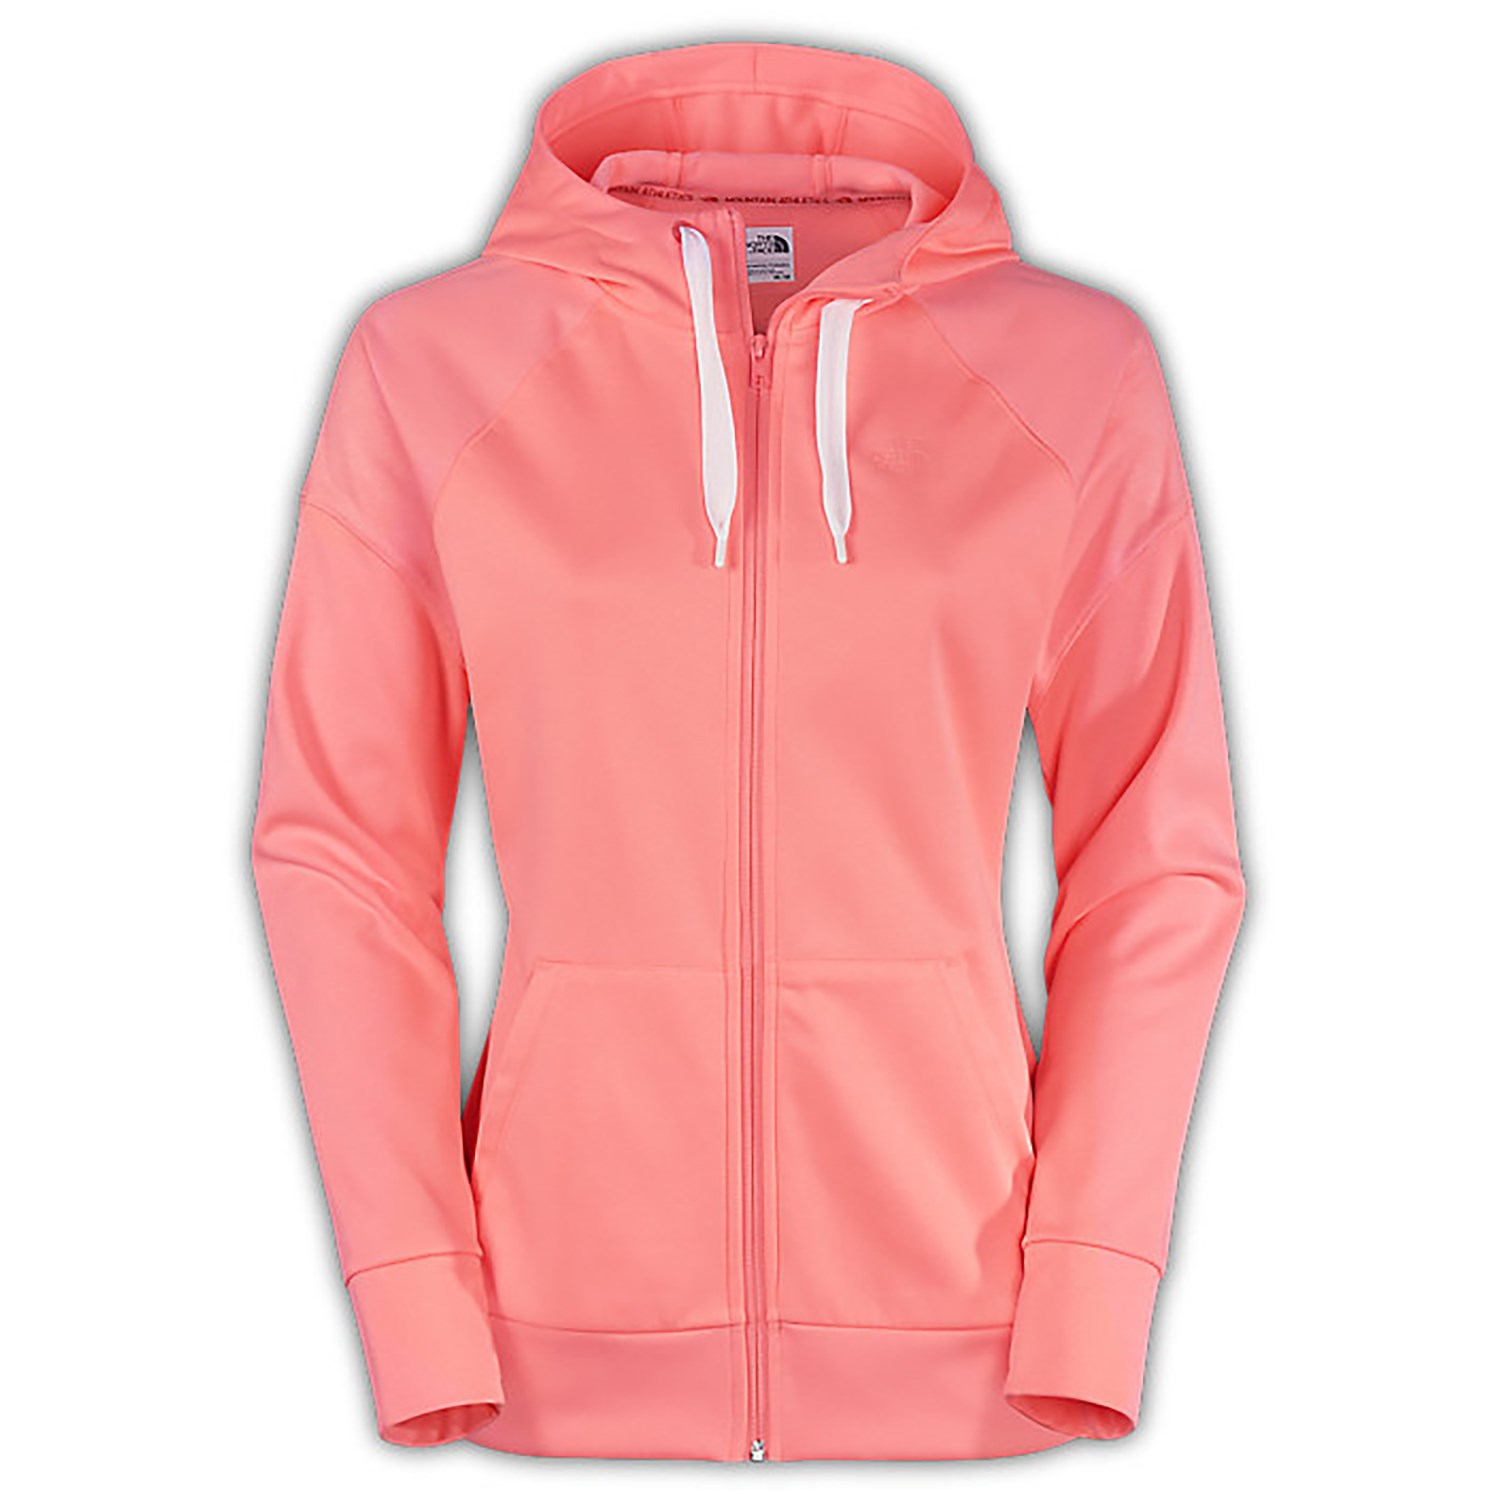 98b5b43a3 The North Face Suprema Full-Zip Hoodie - Women's | evo